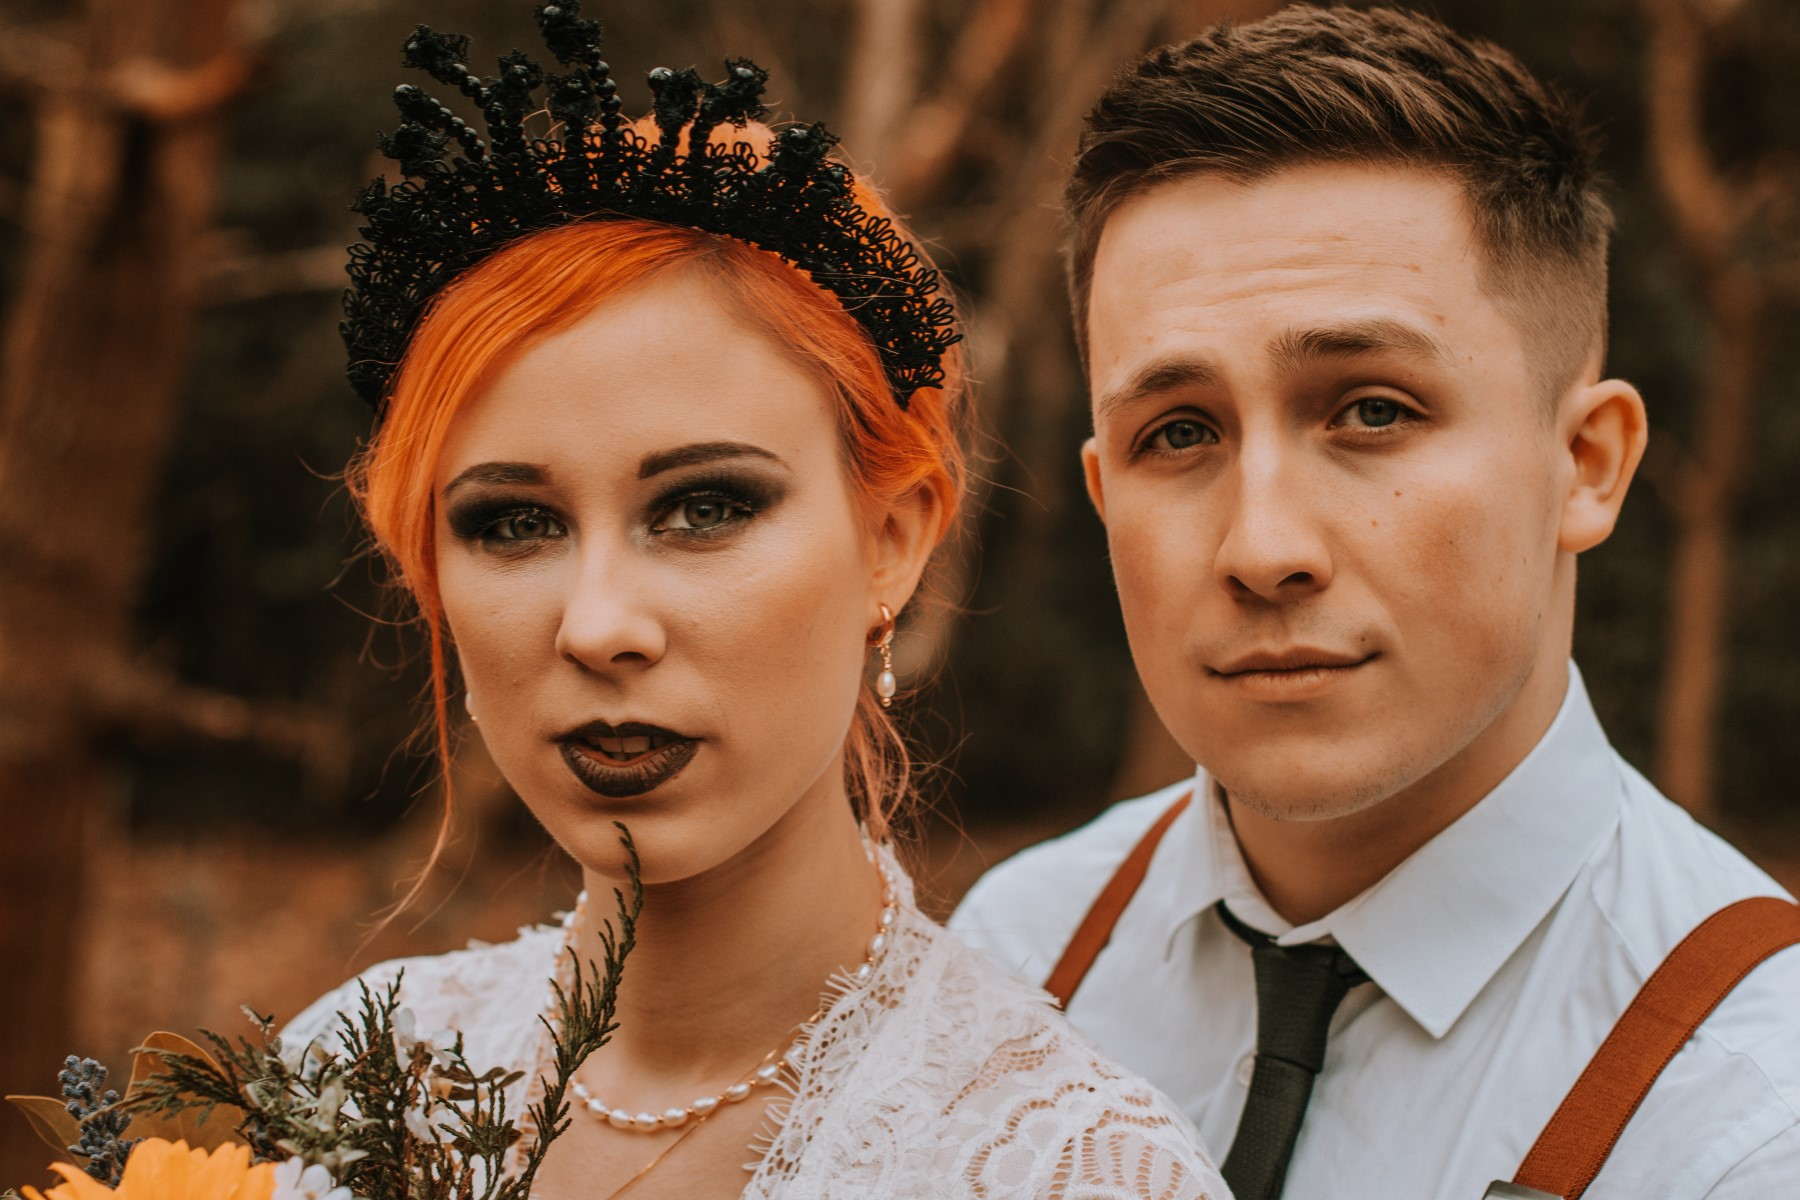 Alternative Forest Wedding - Sammy Leas Retro Emporium -Photography By Wills- alternative wedding - unconventional wedding- edgy woodland wedding- edgy wedding makeup